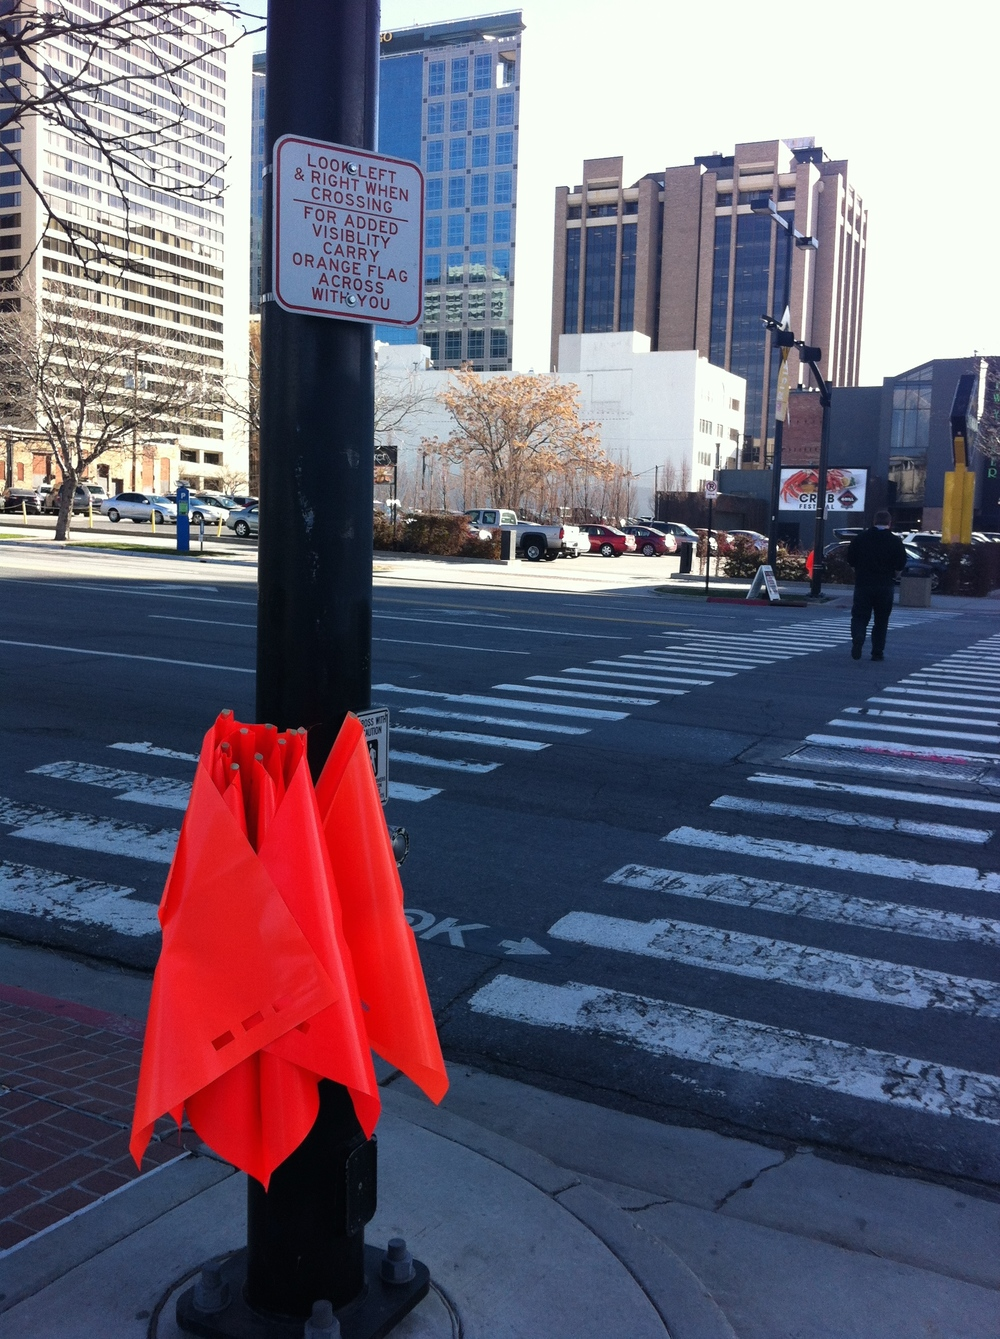 Salt Lake City takes cross walk safety as step further by providing bright orange flags for pedestrians to use as they cross the street. Is this going too far?